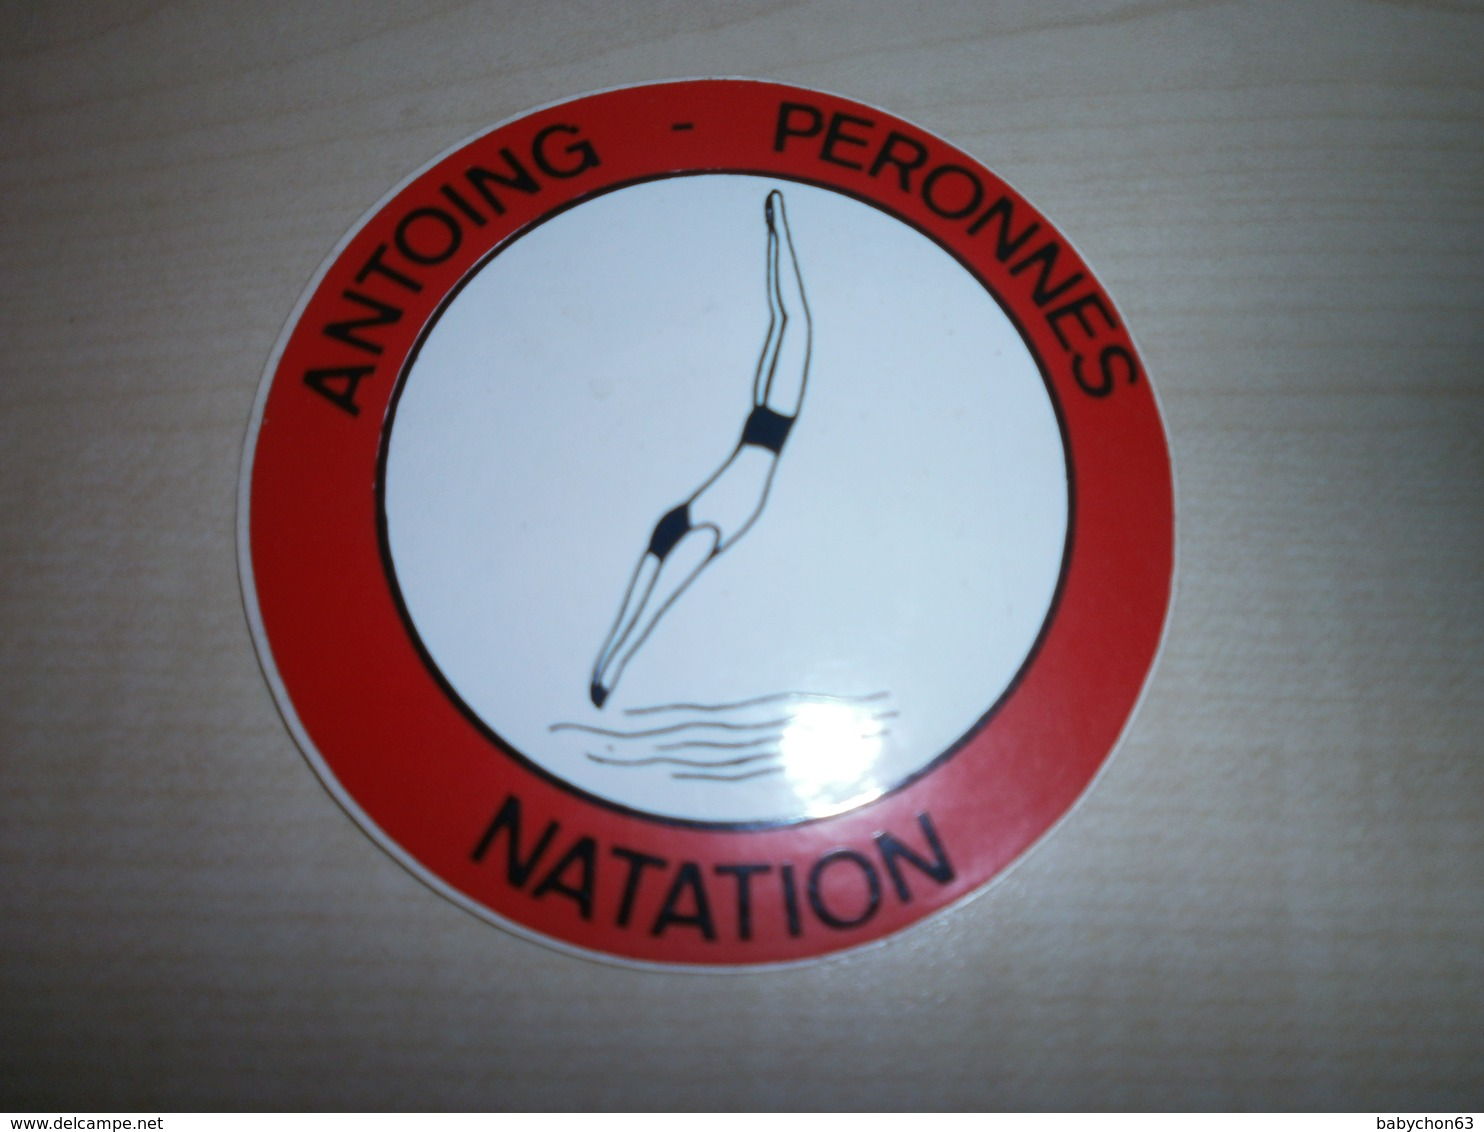 Autocollant Ancien ANTOING-PERONNES   NATATION - Other